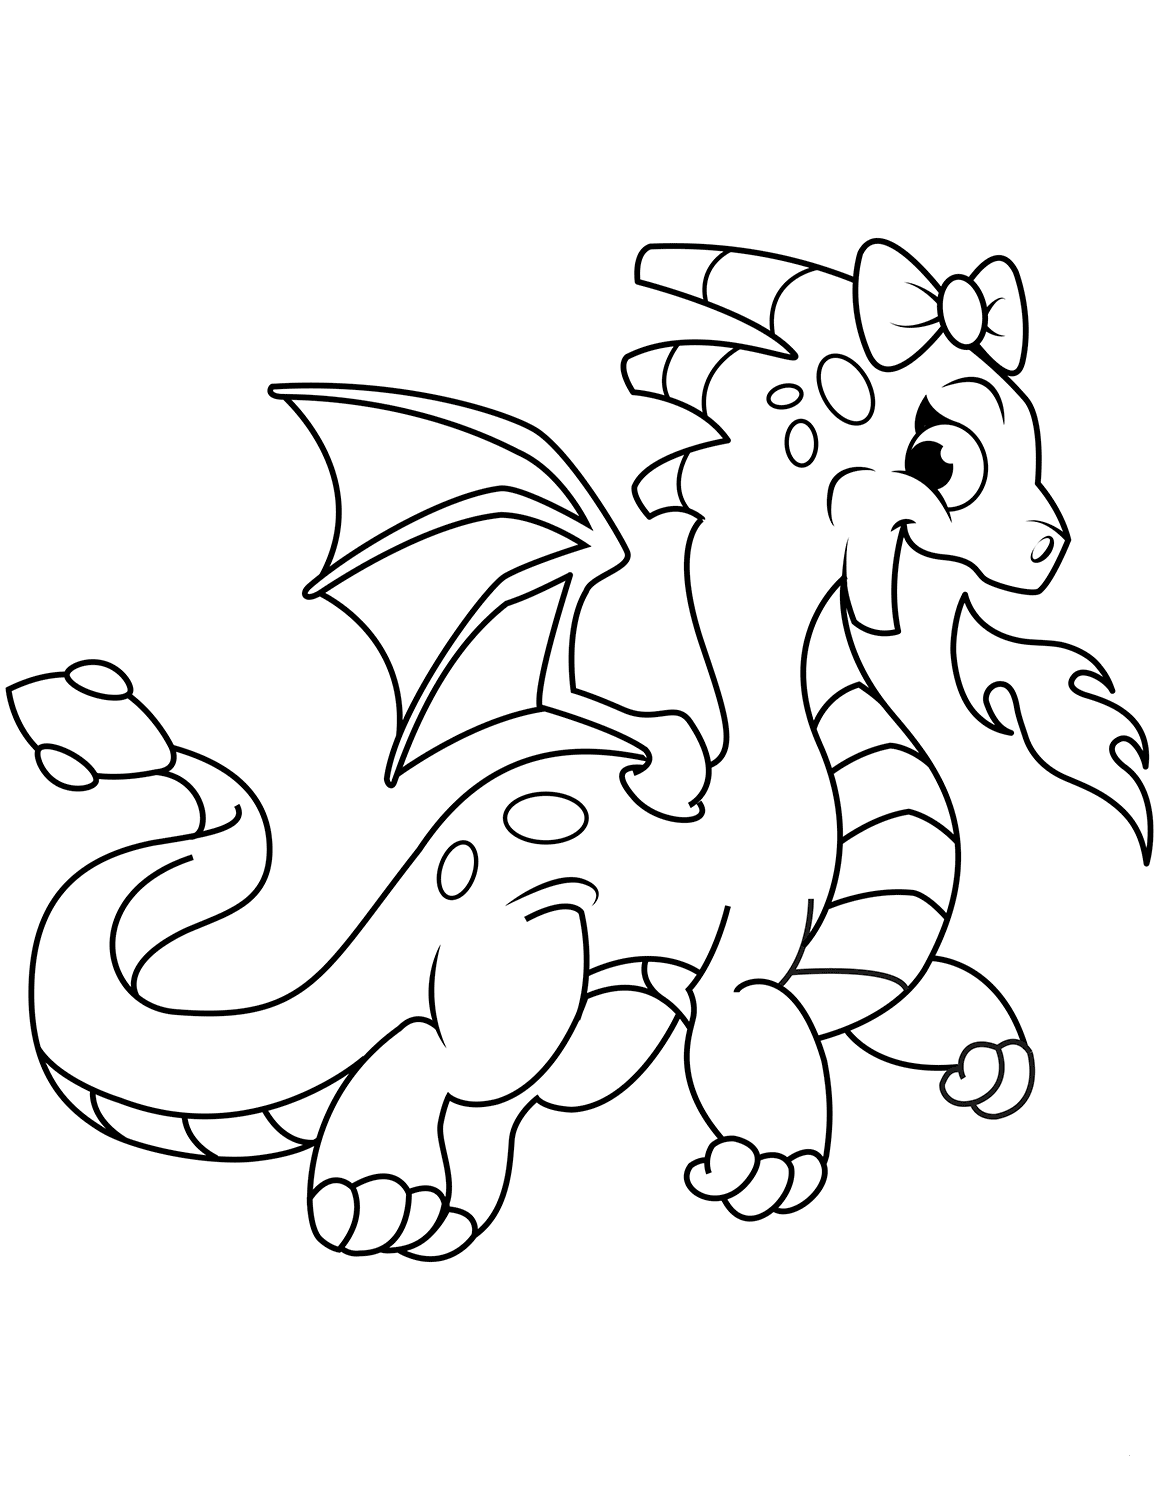 dragon pictures to color and print 35 free printable dragon coloring pages to print color and pictures dragon